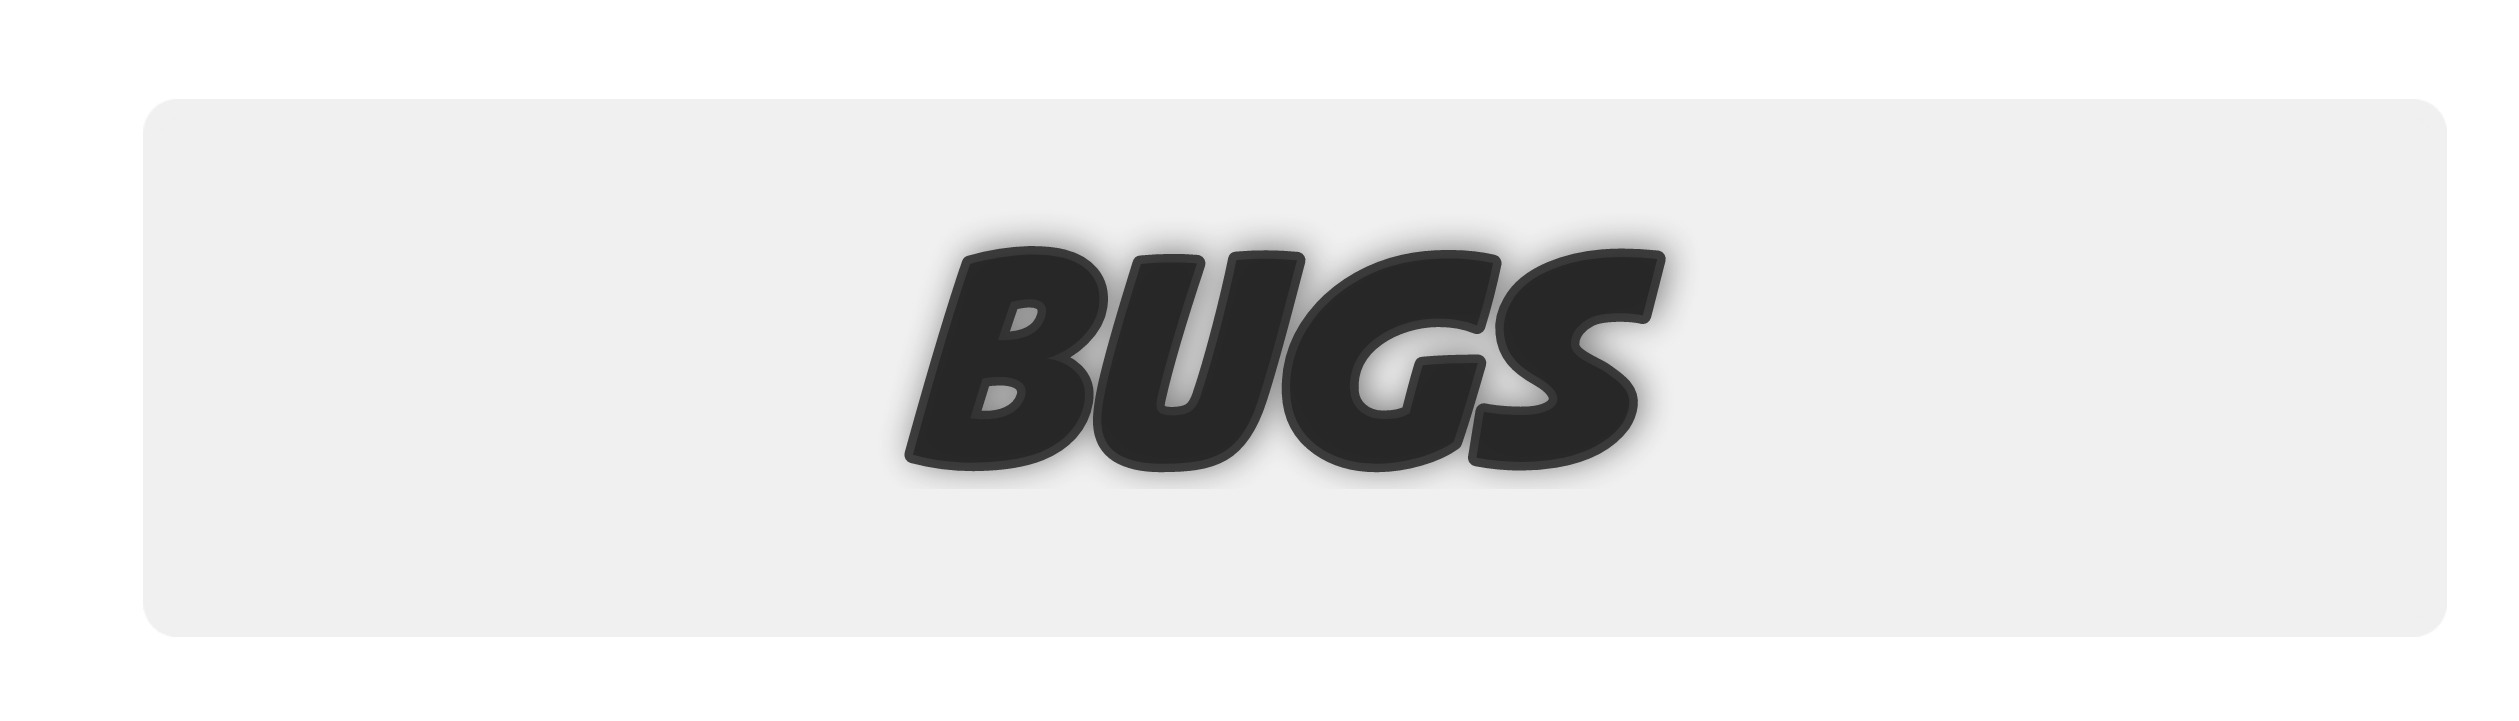 BUGS.png